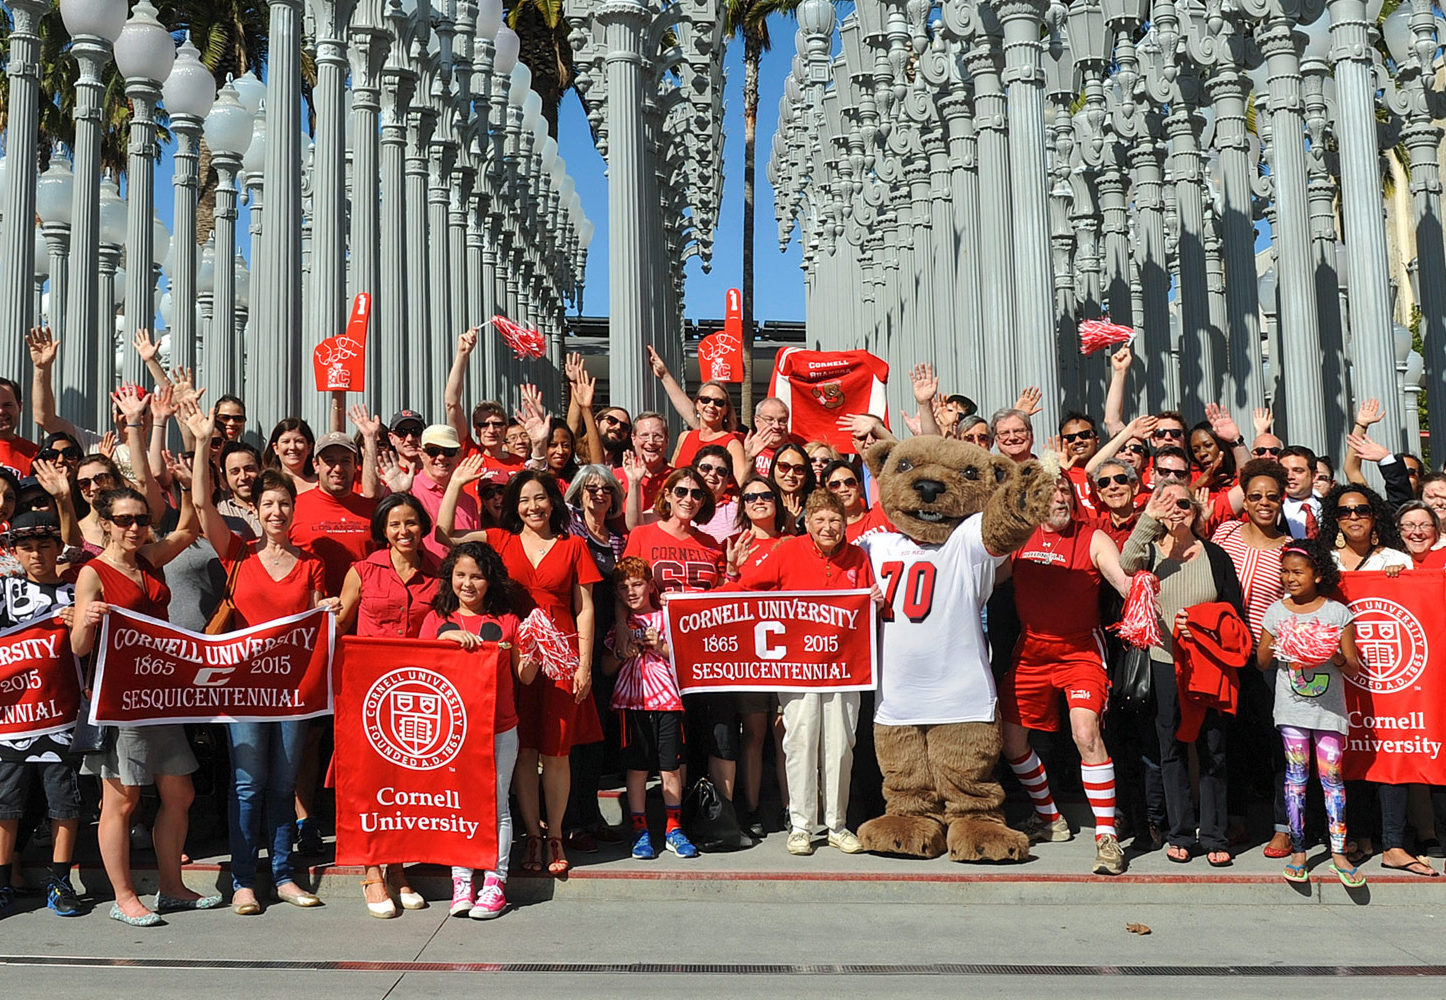 Cornellians gather in Los Angeles for the Cornell Sesquicentennial Tour